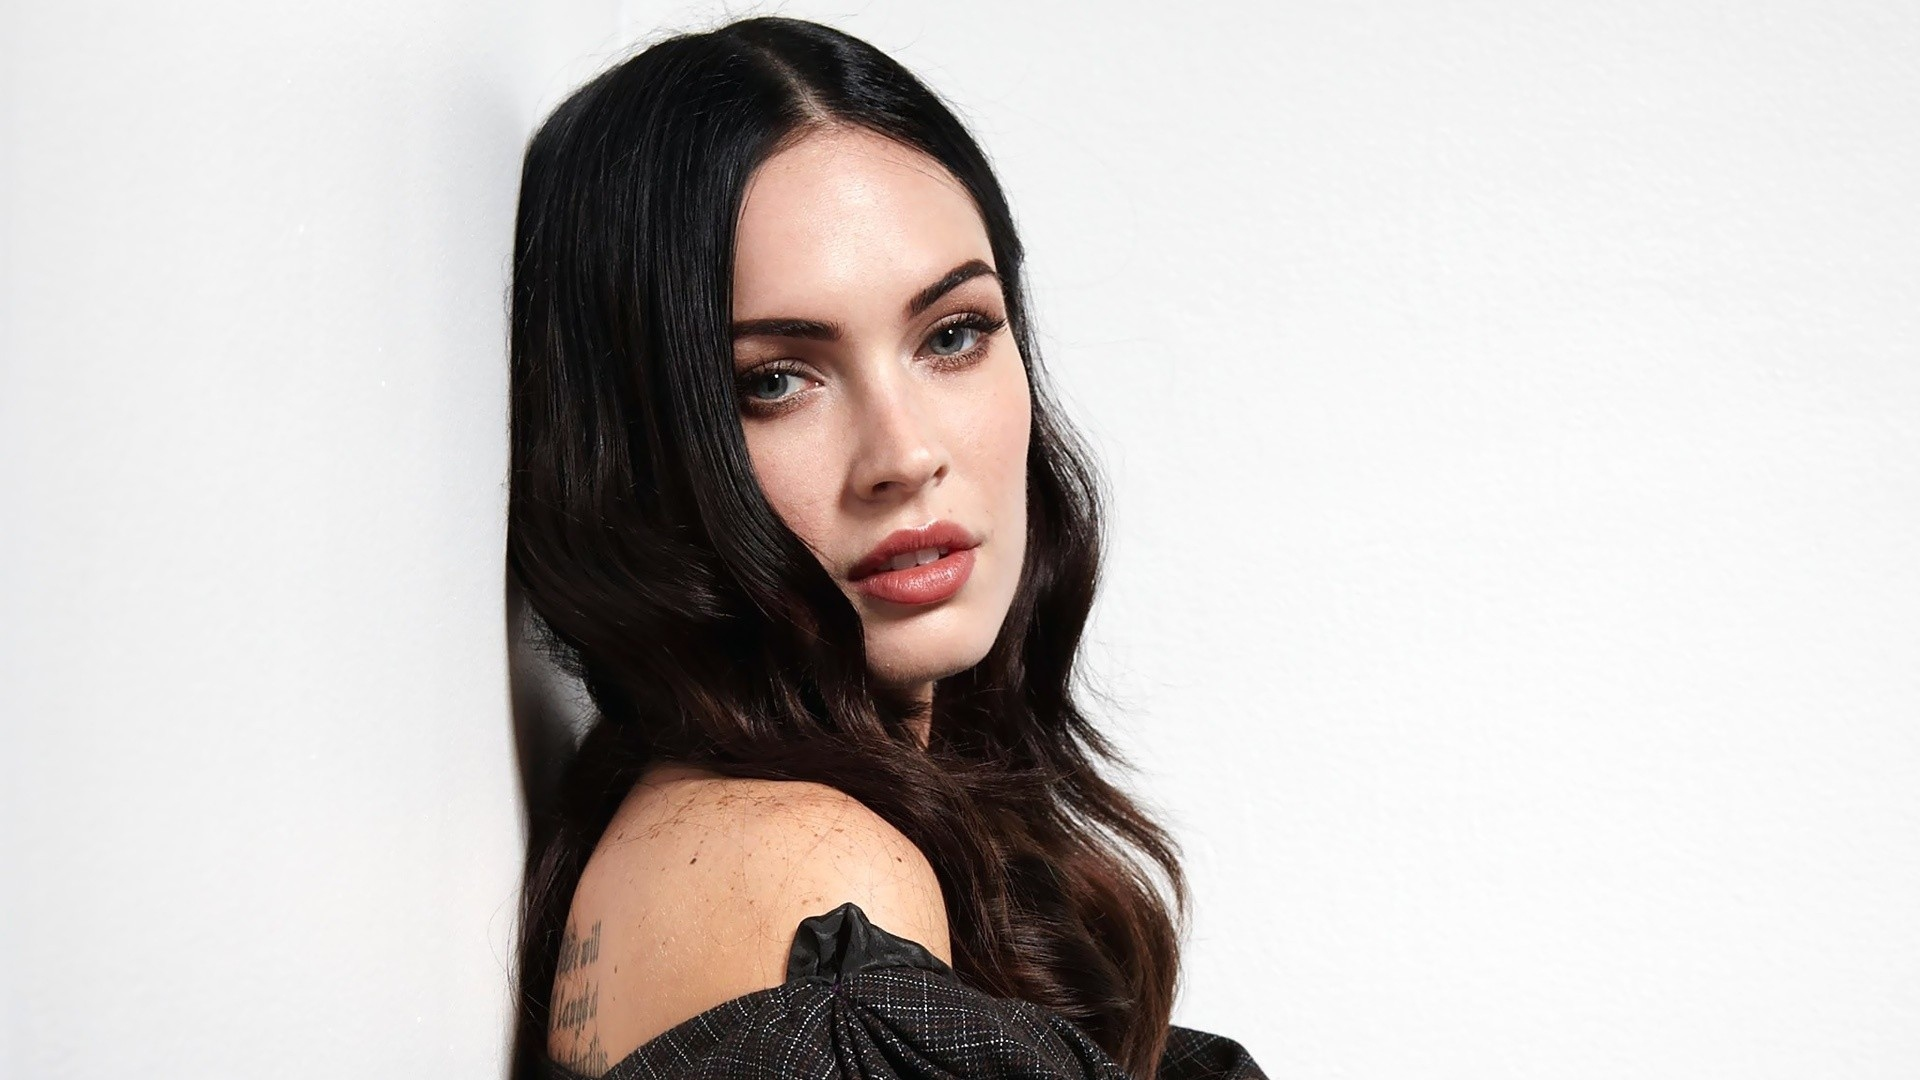 megan fox wallpaper hd...